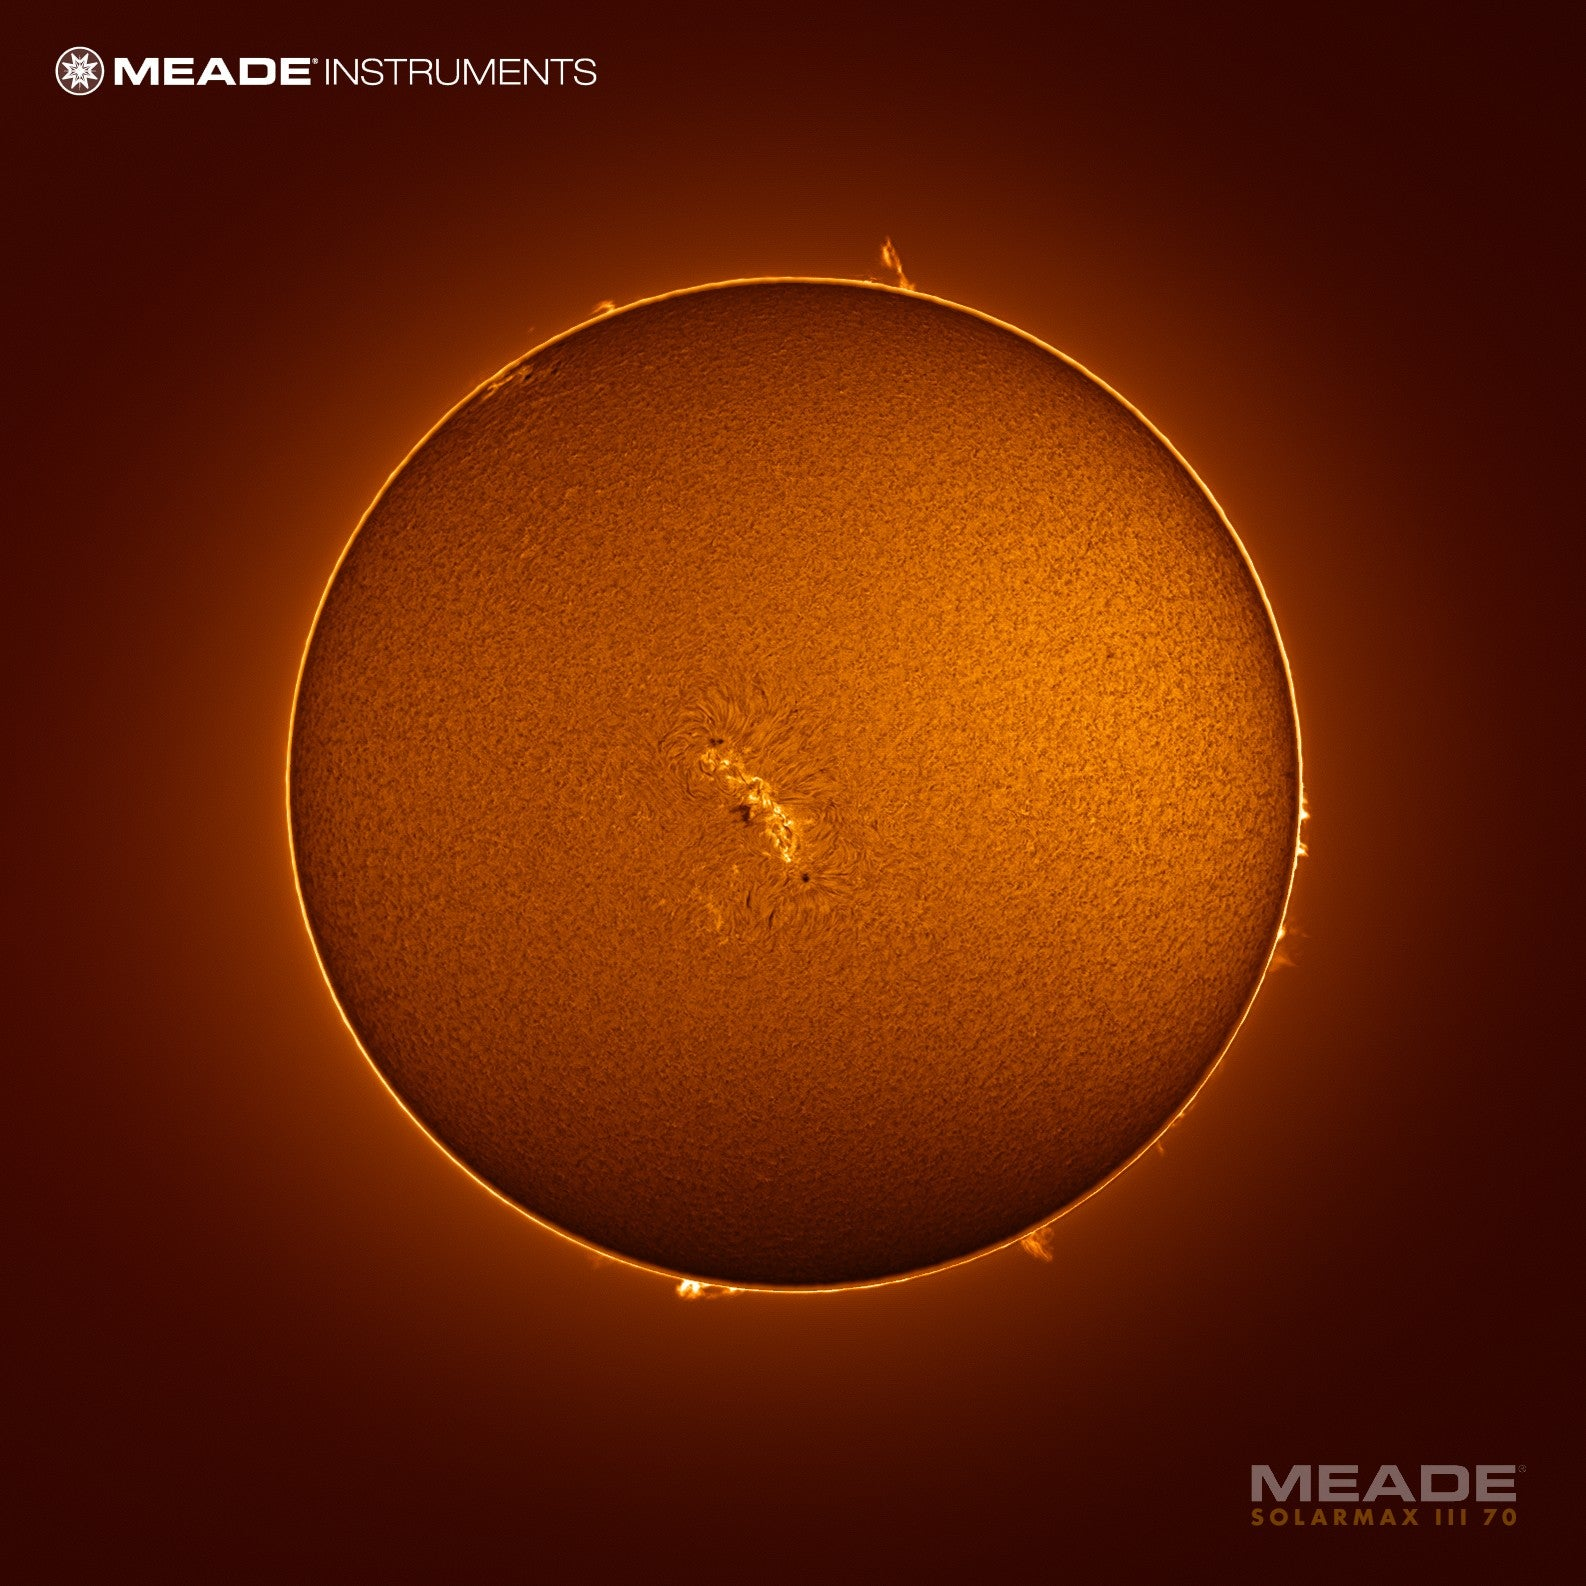 Meade SolarMax III 70MM Solar Telescope with RichView System and 10MM Blocking Filter